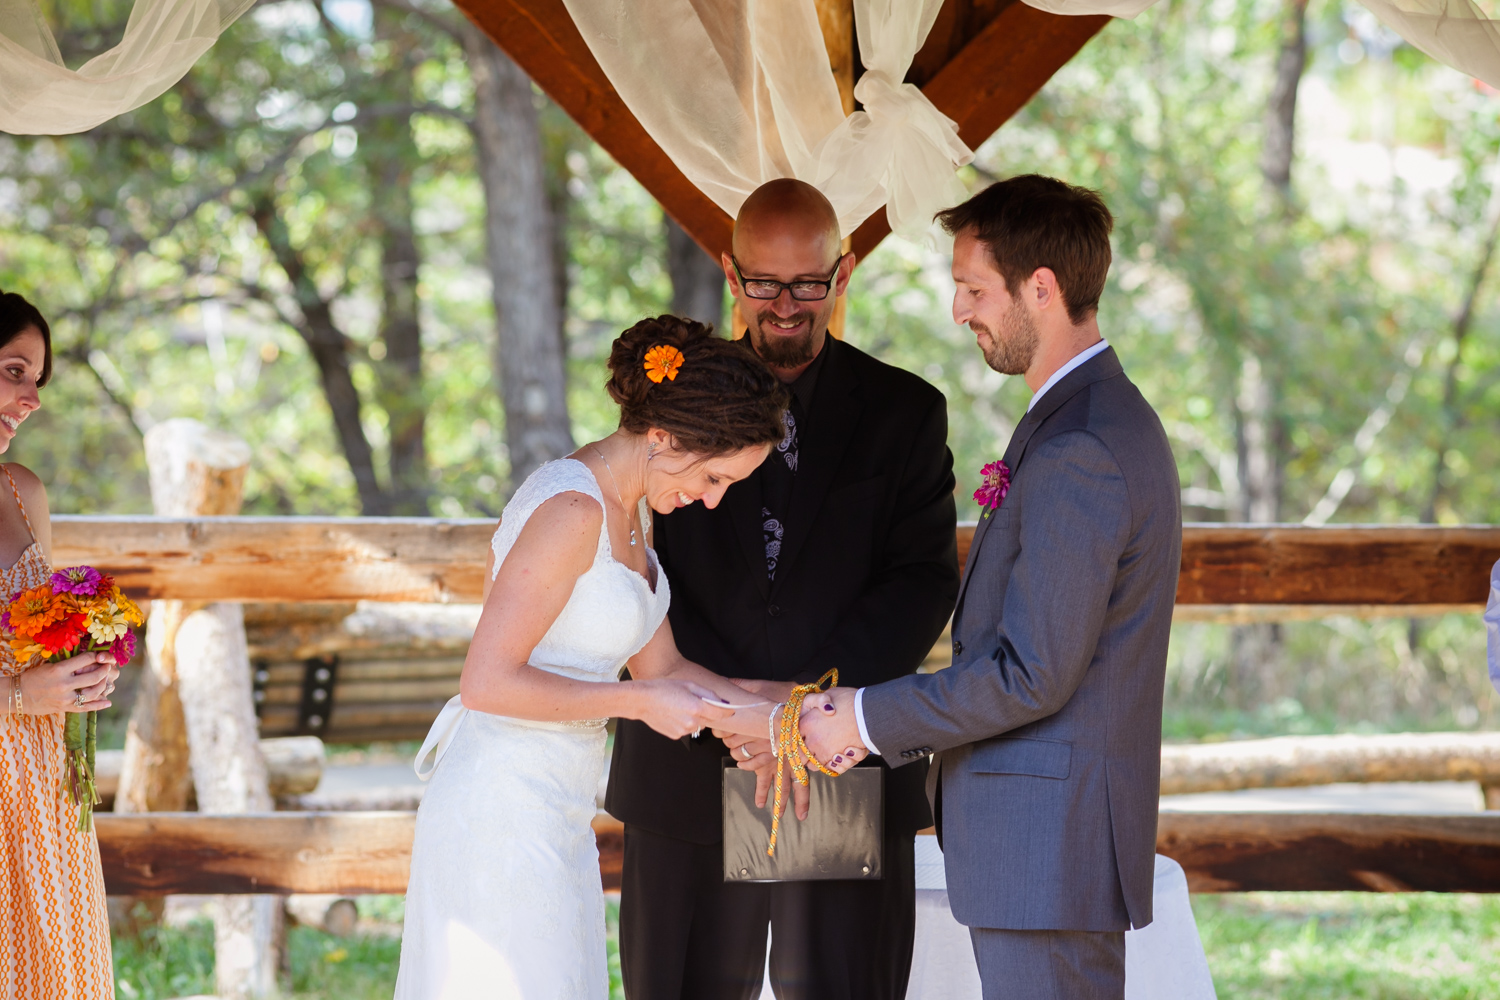 Coal_Creek_Canyon_Wedding_049.JPG